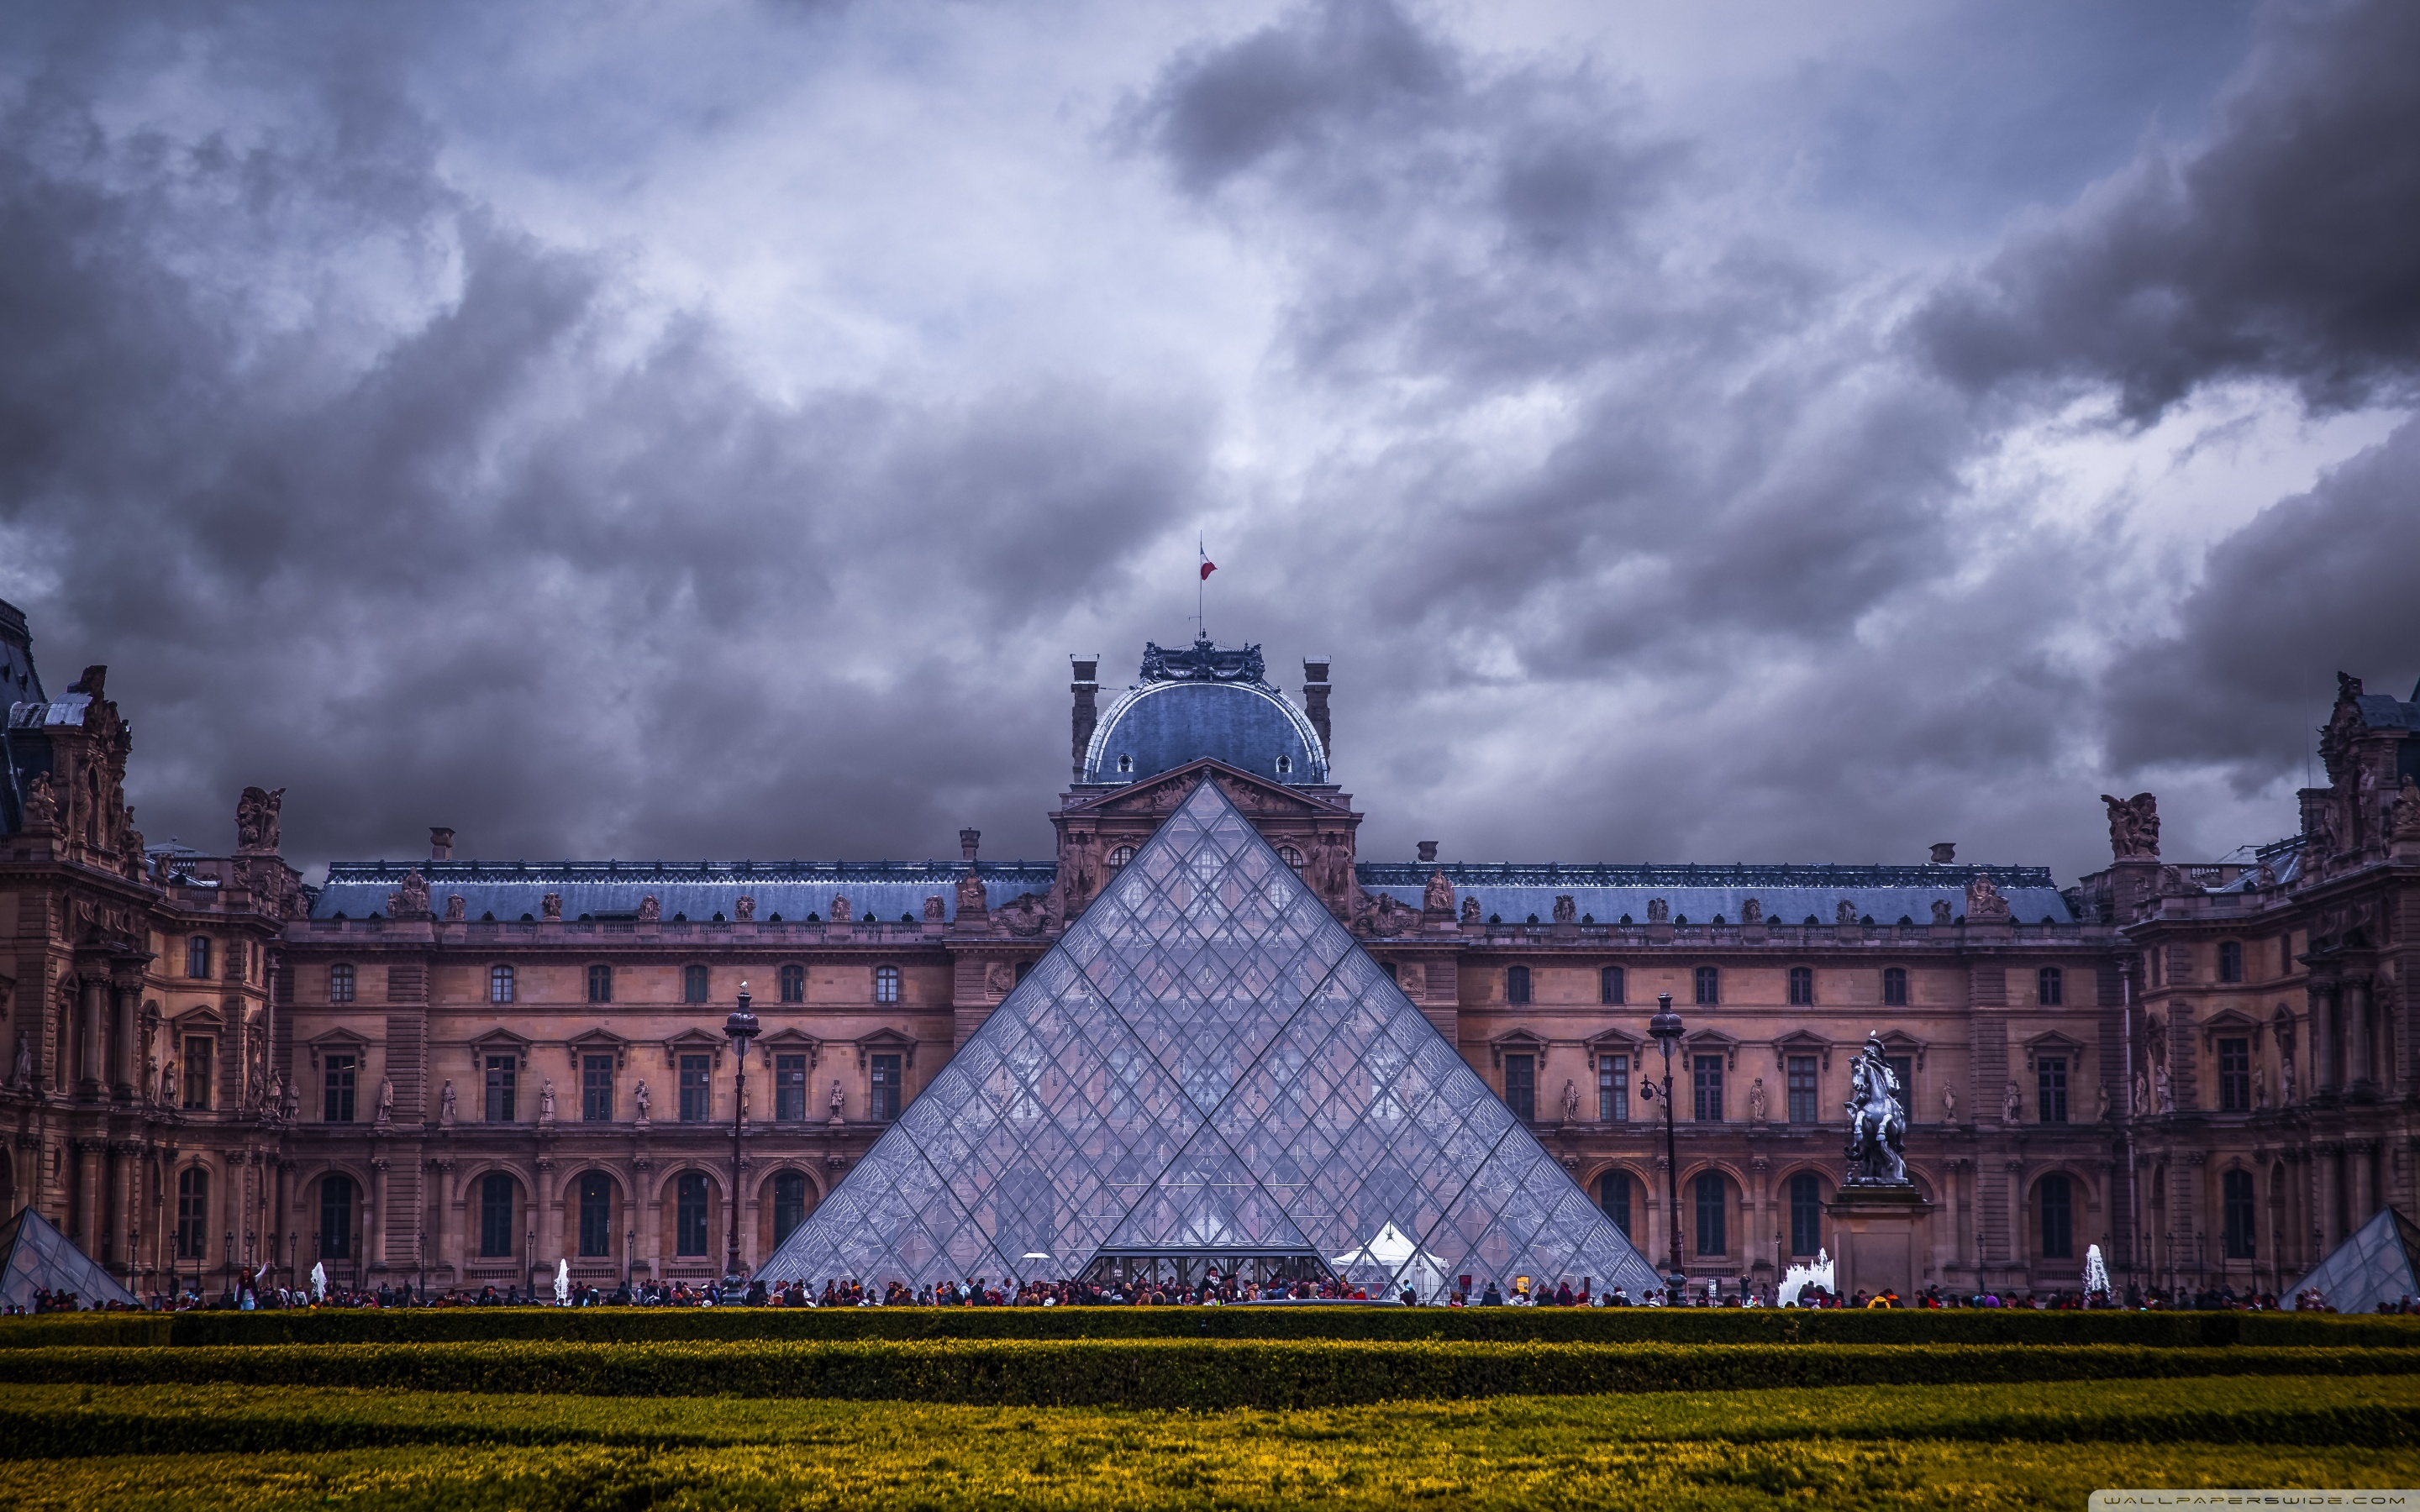 Louvre Museum Paris France 4K HD Desktop Wallpaper for 4K 2880x1800